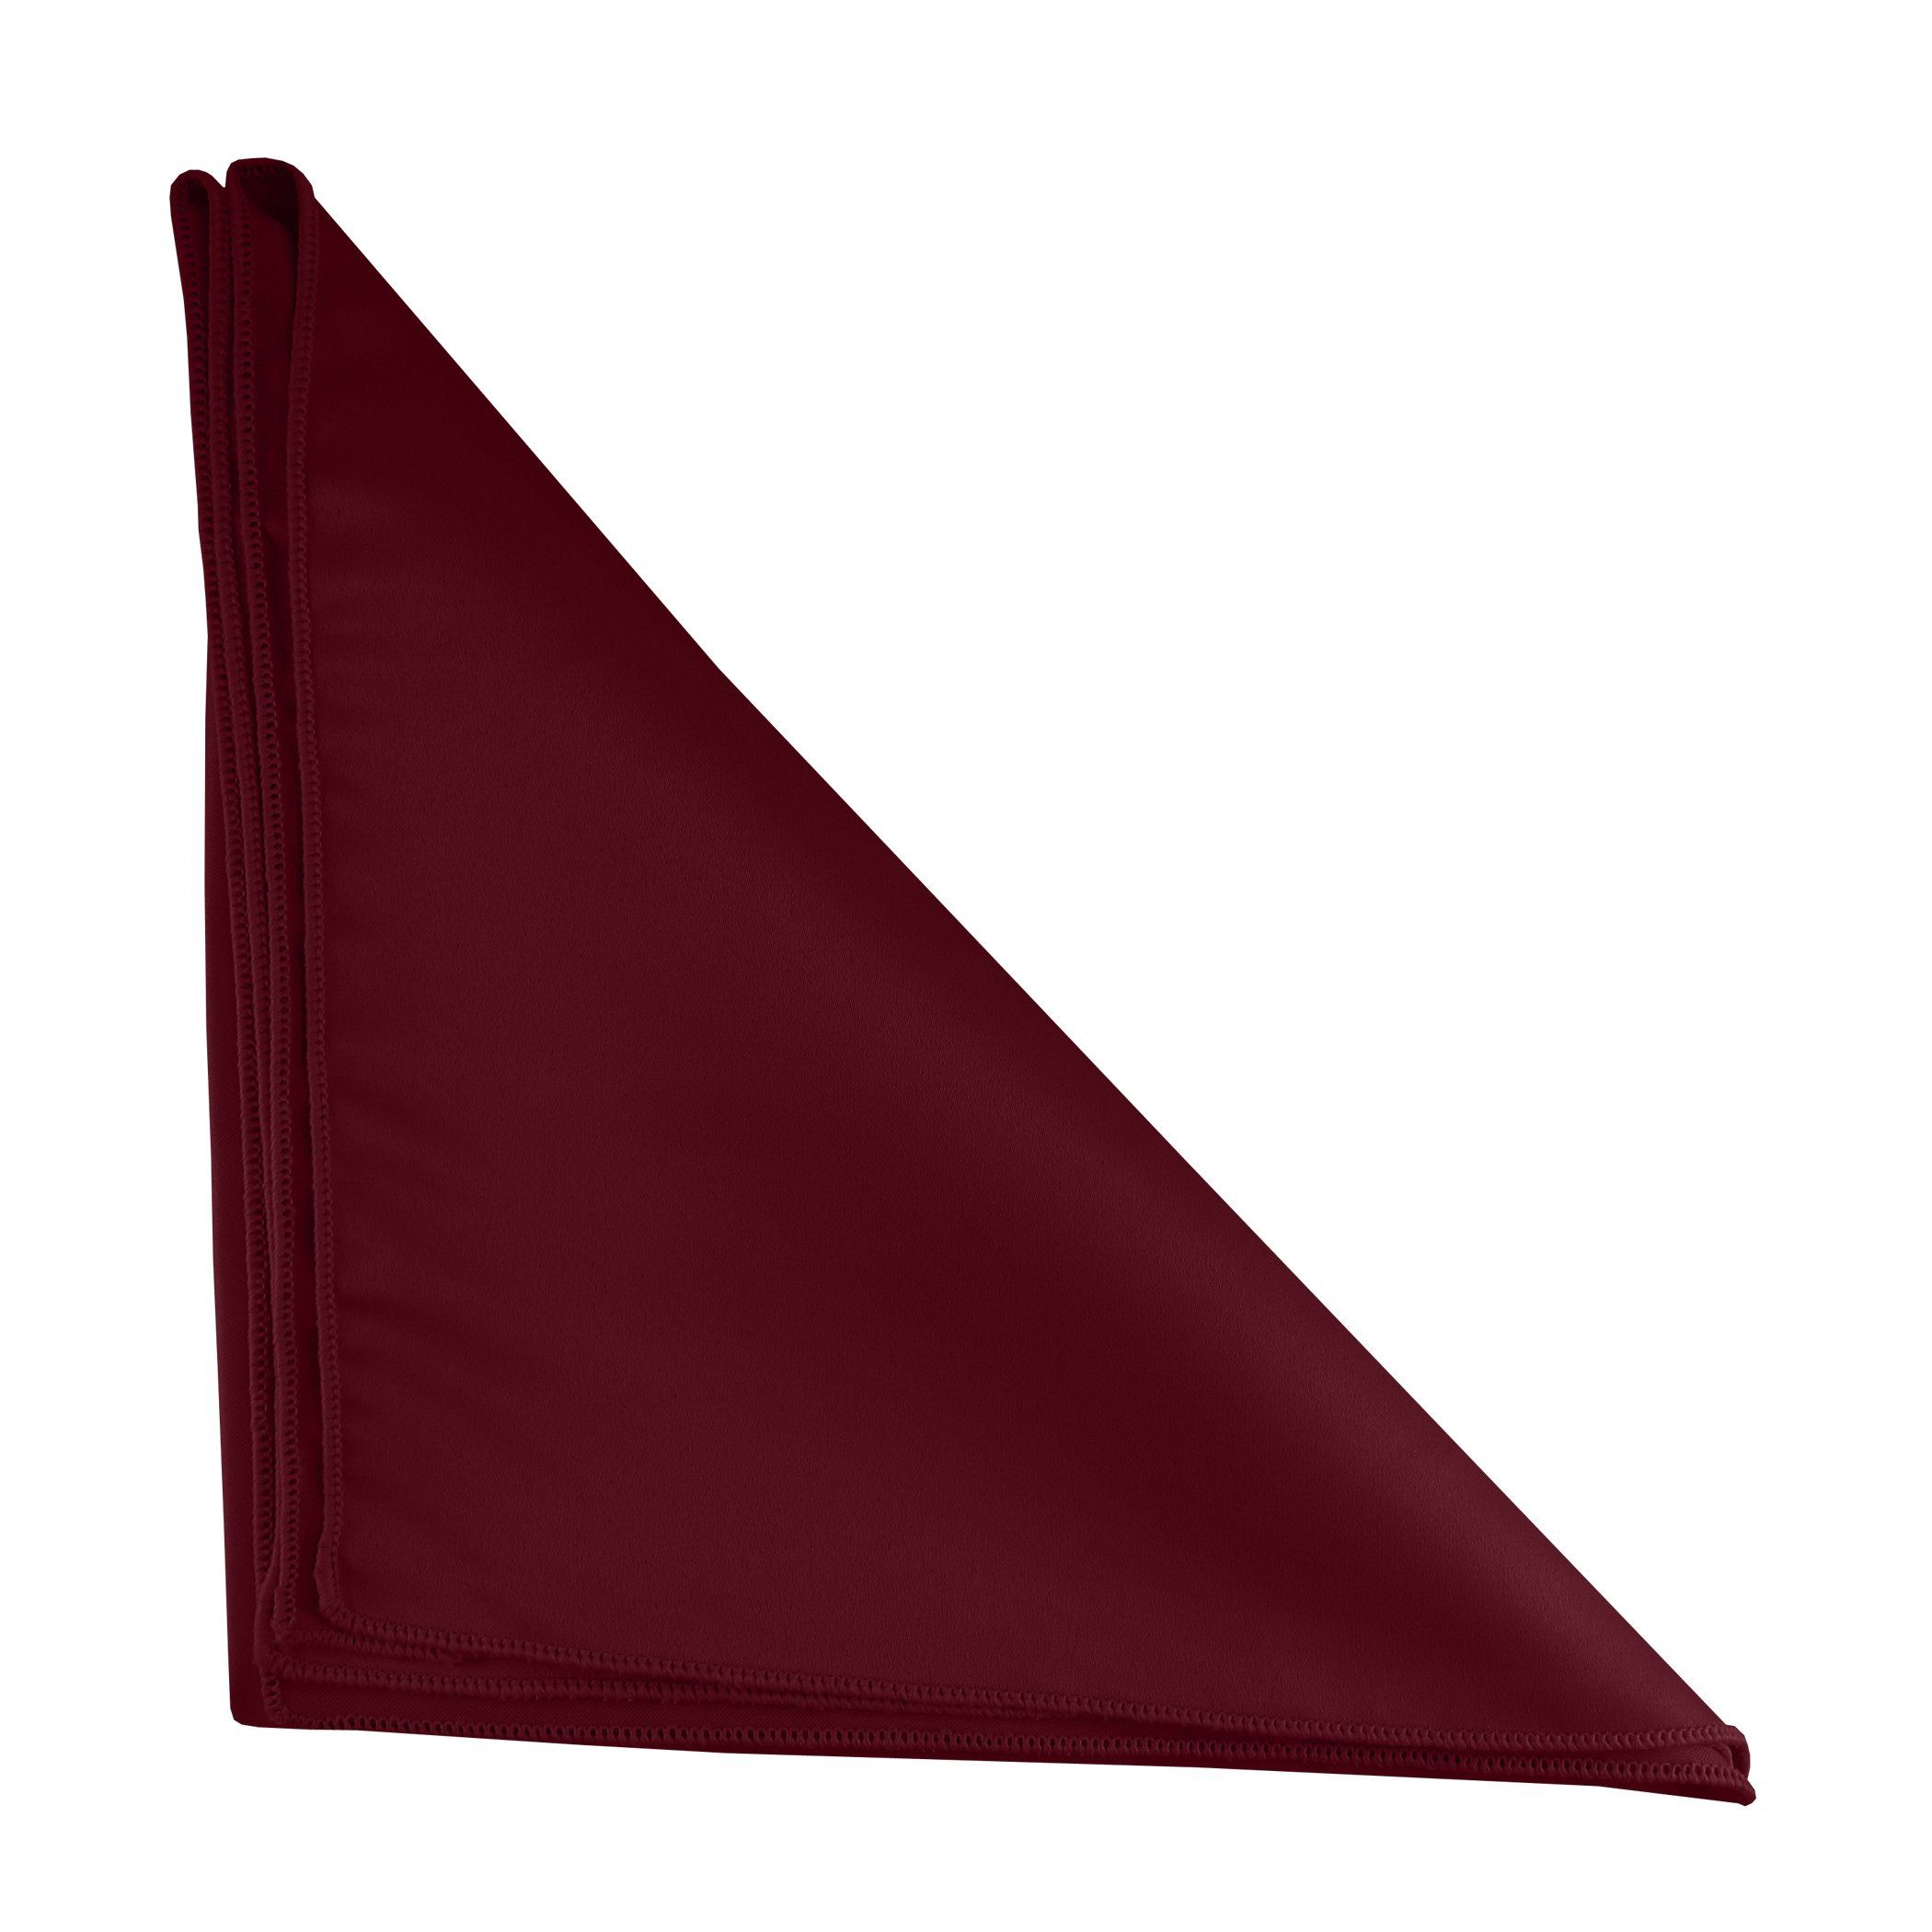 Ultimate Textile -3 Dozen- Bridal Satin 20 x 20-Inch Dinner Napkins, Burgundy Red by Ultimate Textile (Image #2)